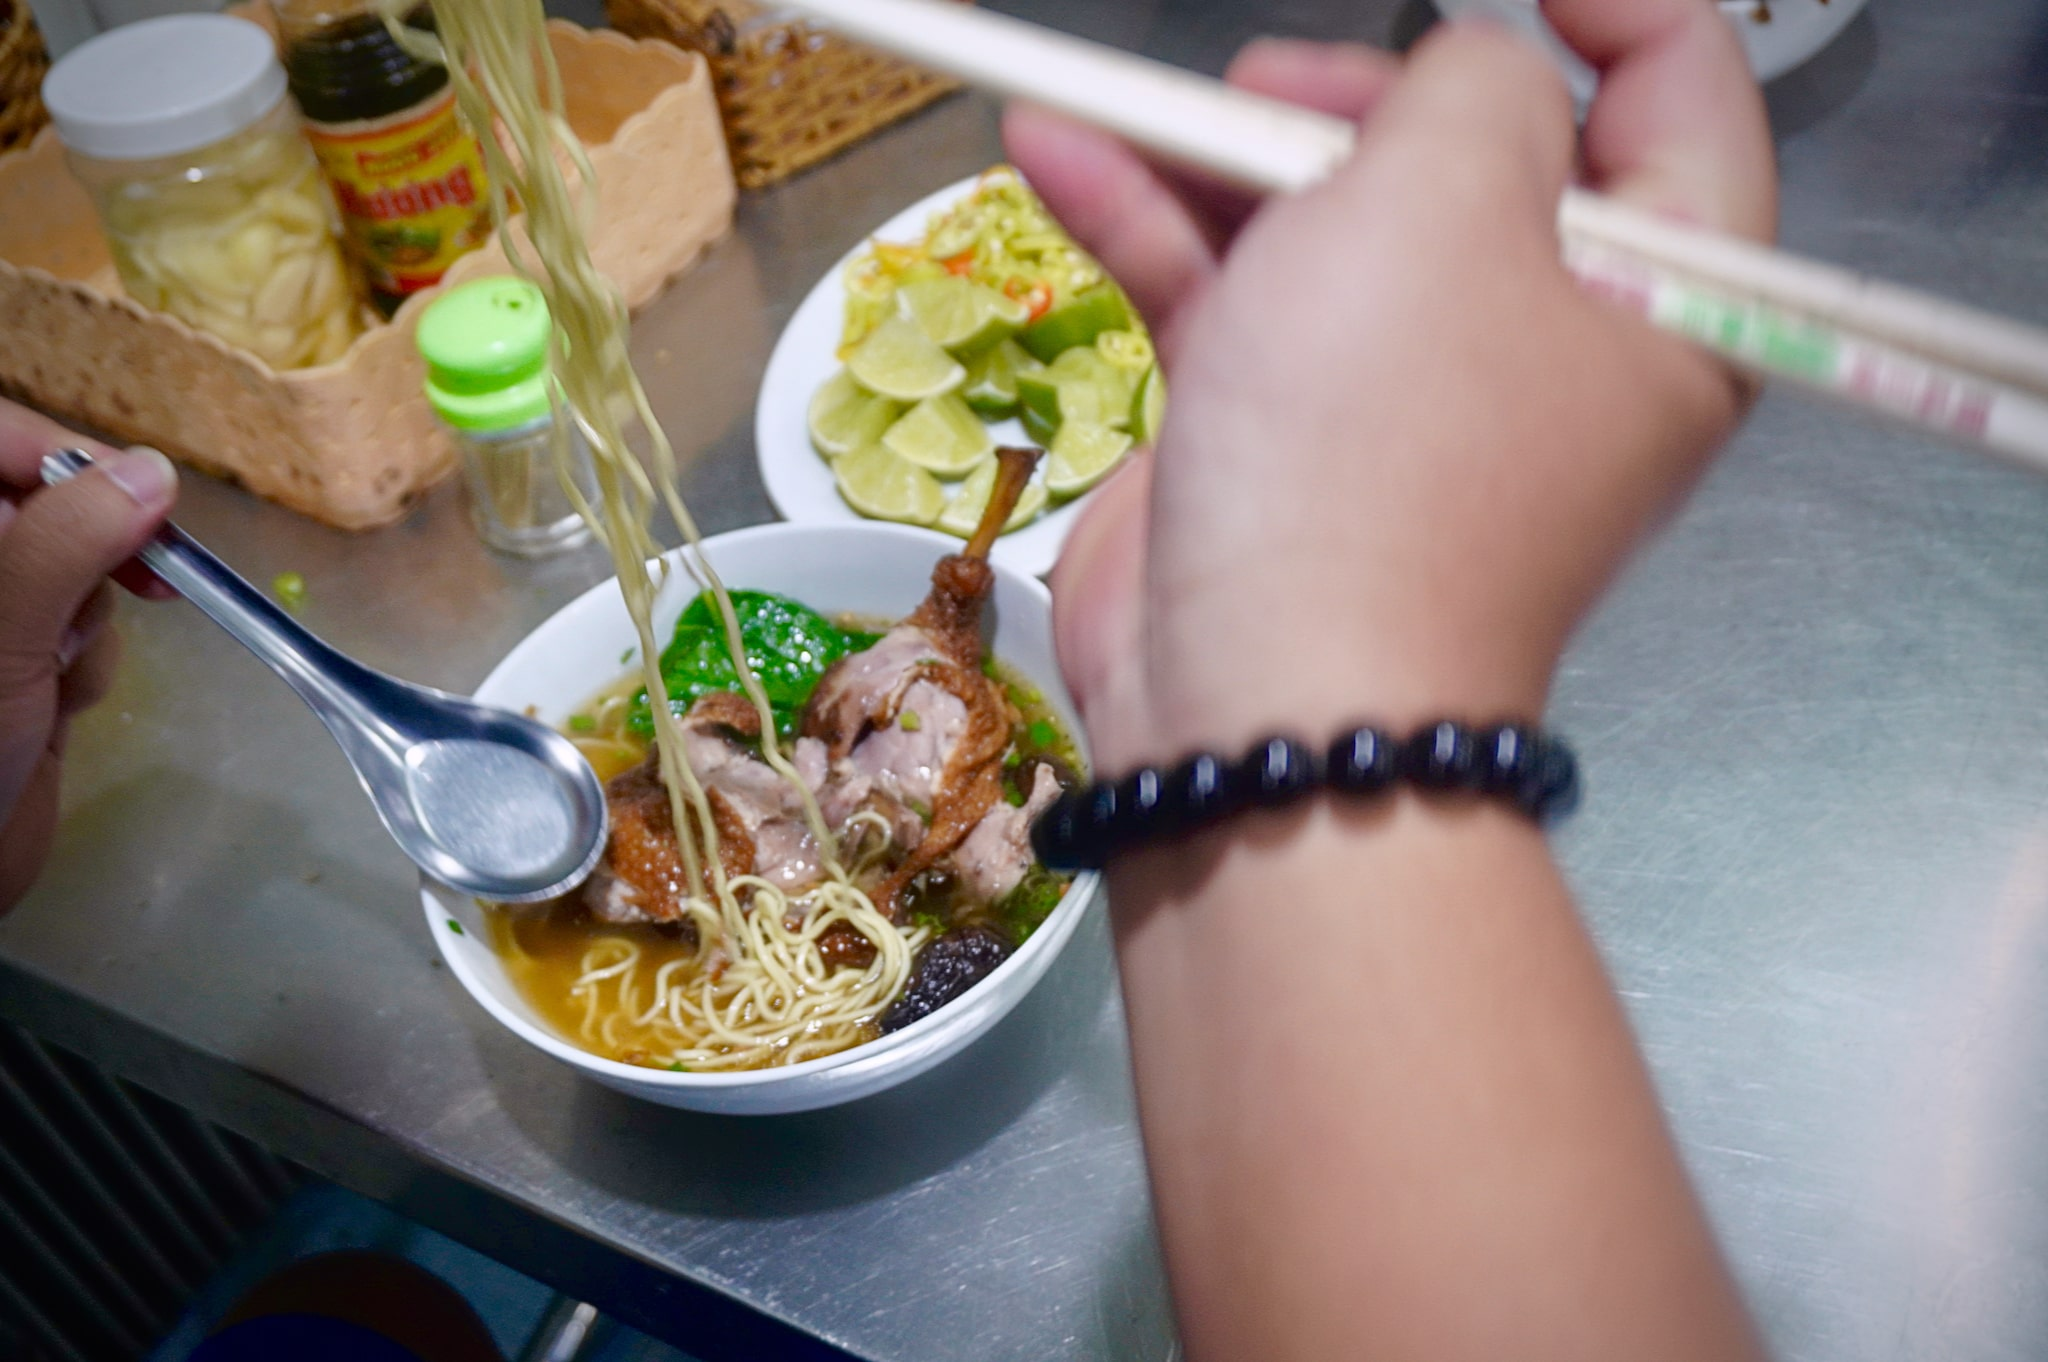 A bowl of duck noodle soup with added duck intestines costs just VND75,000 at Huu Hanh eatery in Long Xuyen City. Photo: Xuan Tung / Tuoi Tre